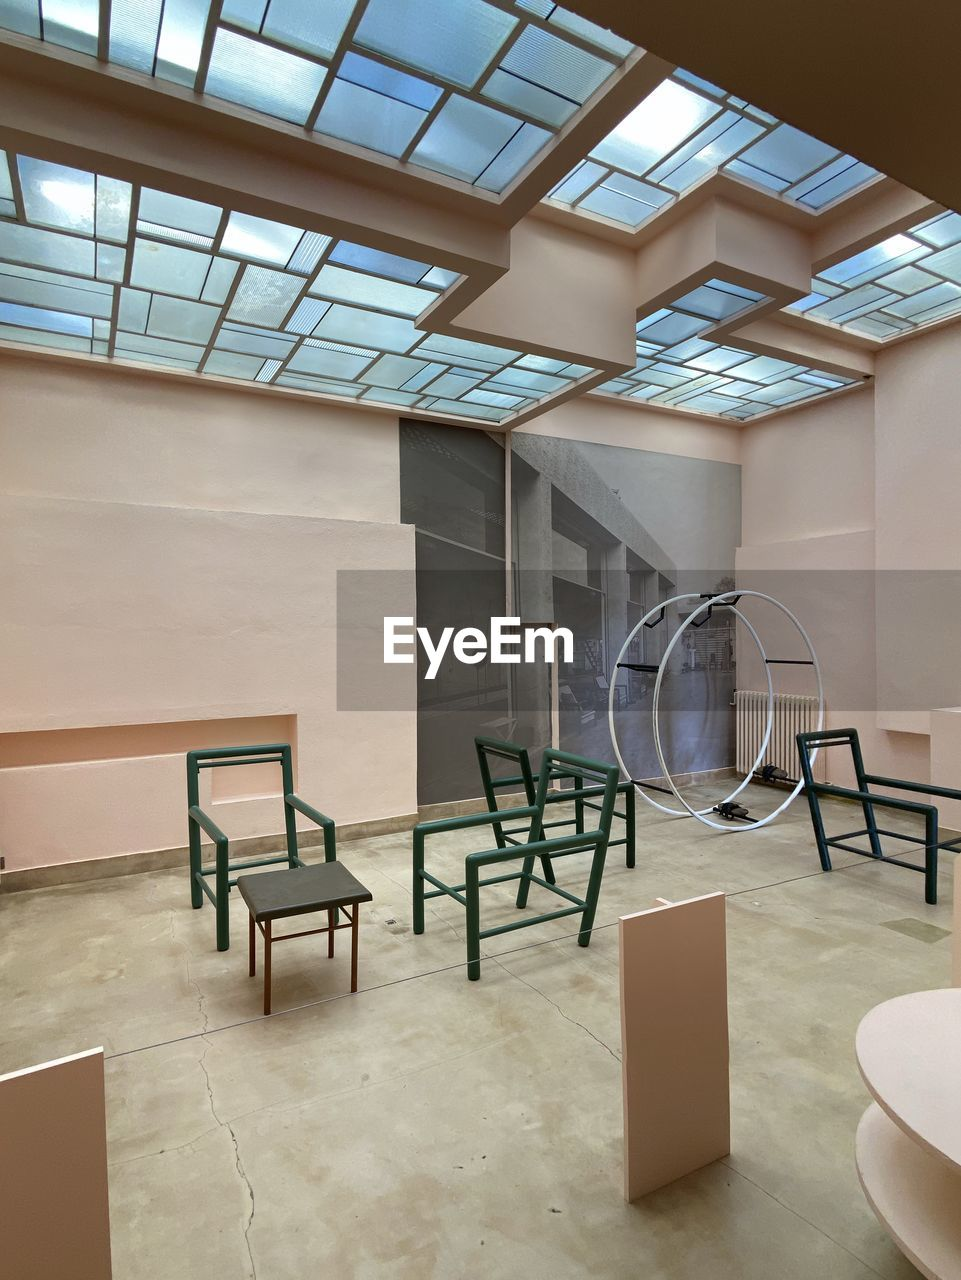 indoors, seat, absence, table, architecture, no people, empty, chair, built structure, flooring, business, day, furniture, modern, office, staircase, wall - building feature, home interior, window, wood - material, ceiling, luxury